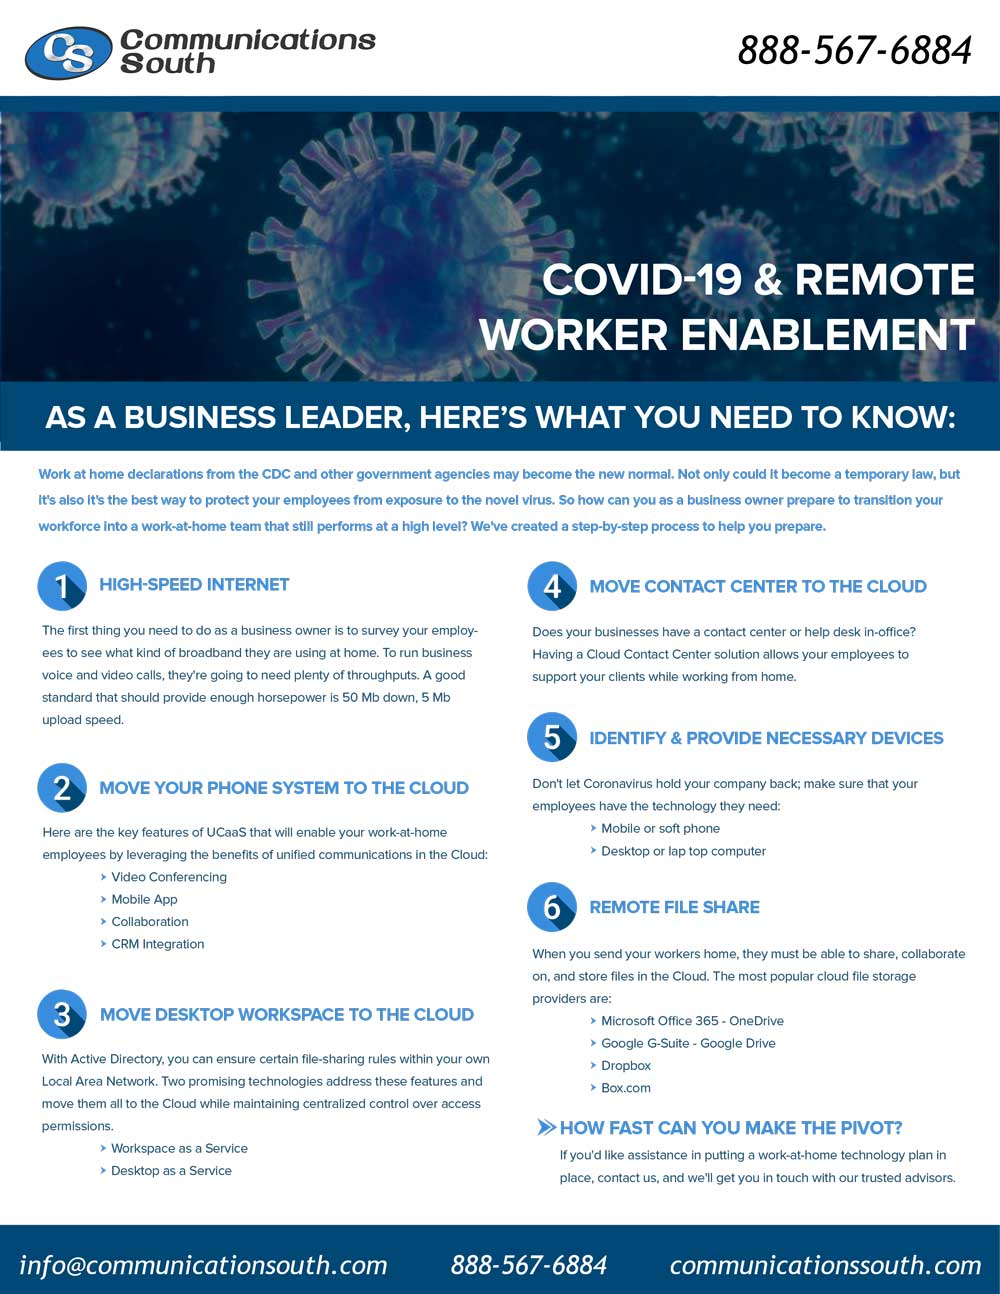 COVID-19 & Remote Worker Enablement